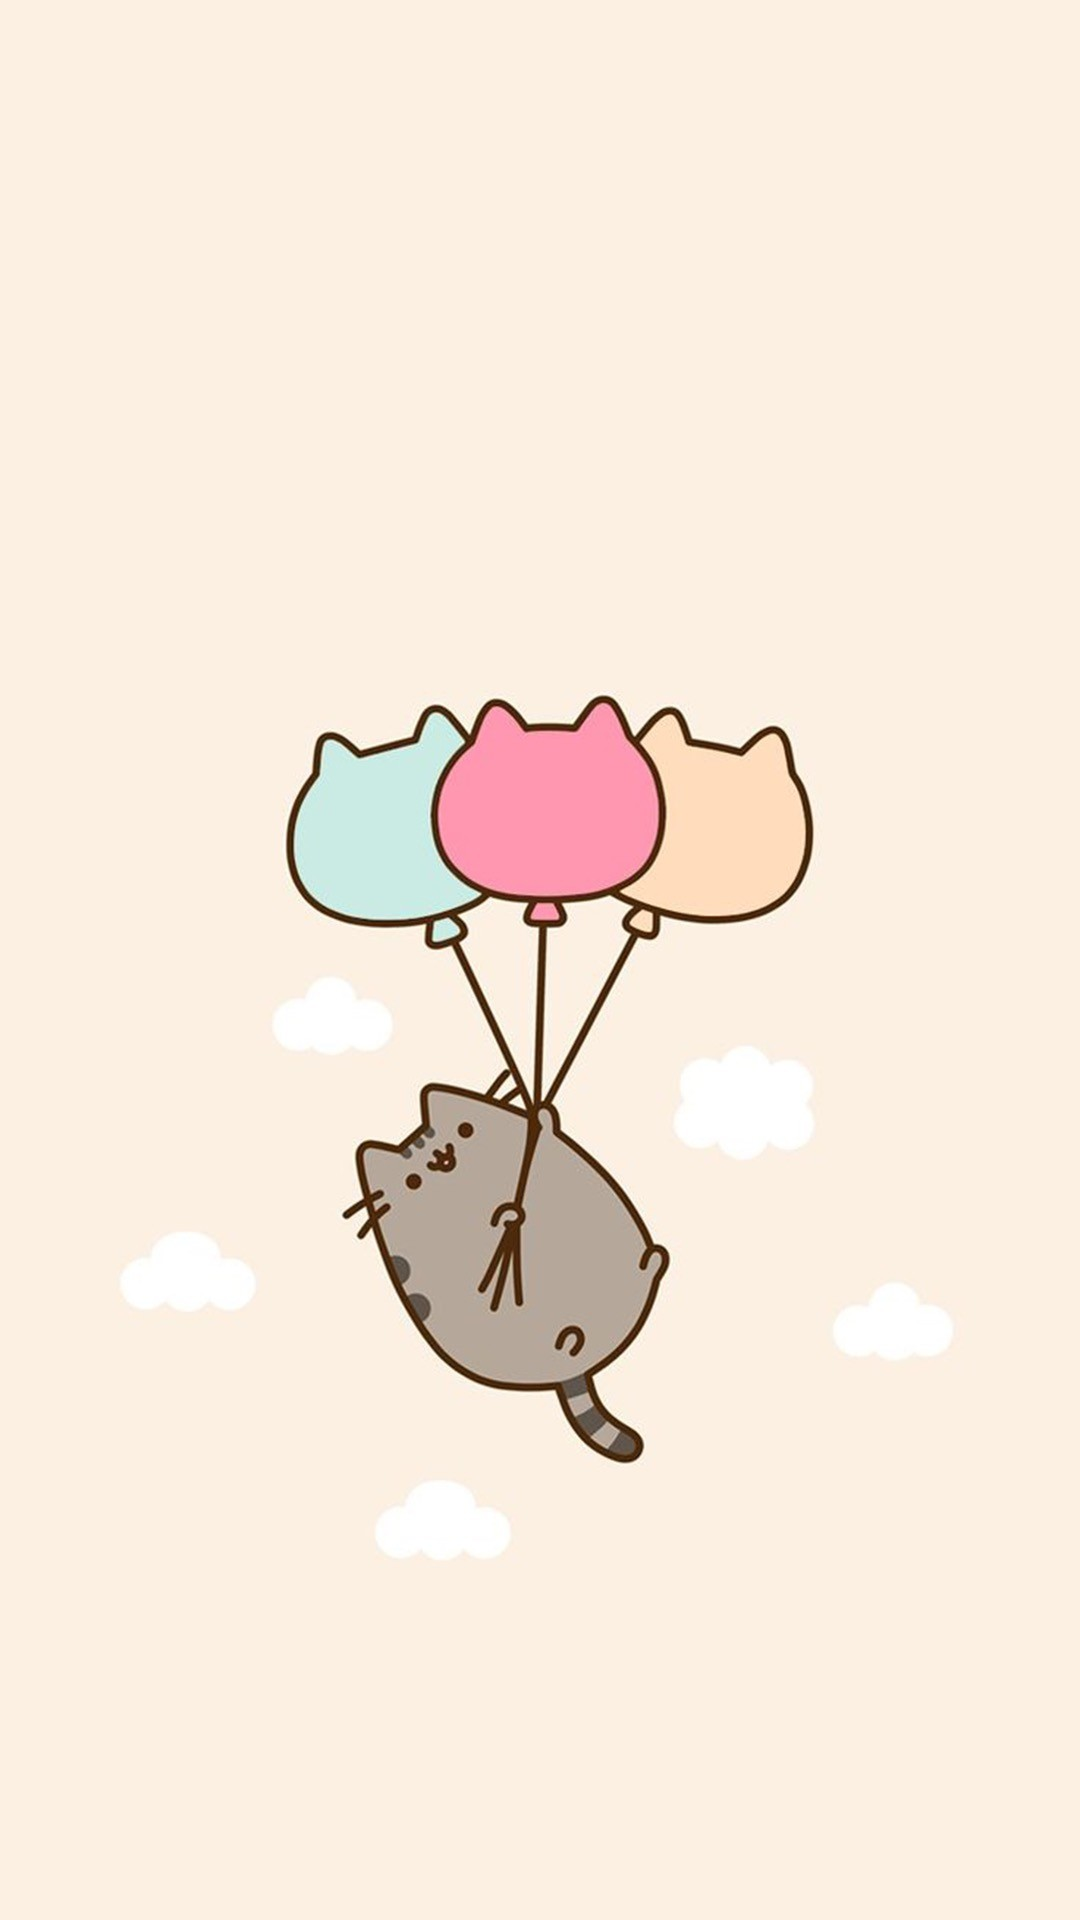 1080x1920 Explore Smile Drawing, Pusheen Cat, and more!